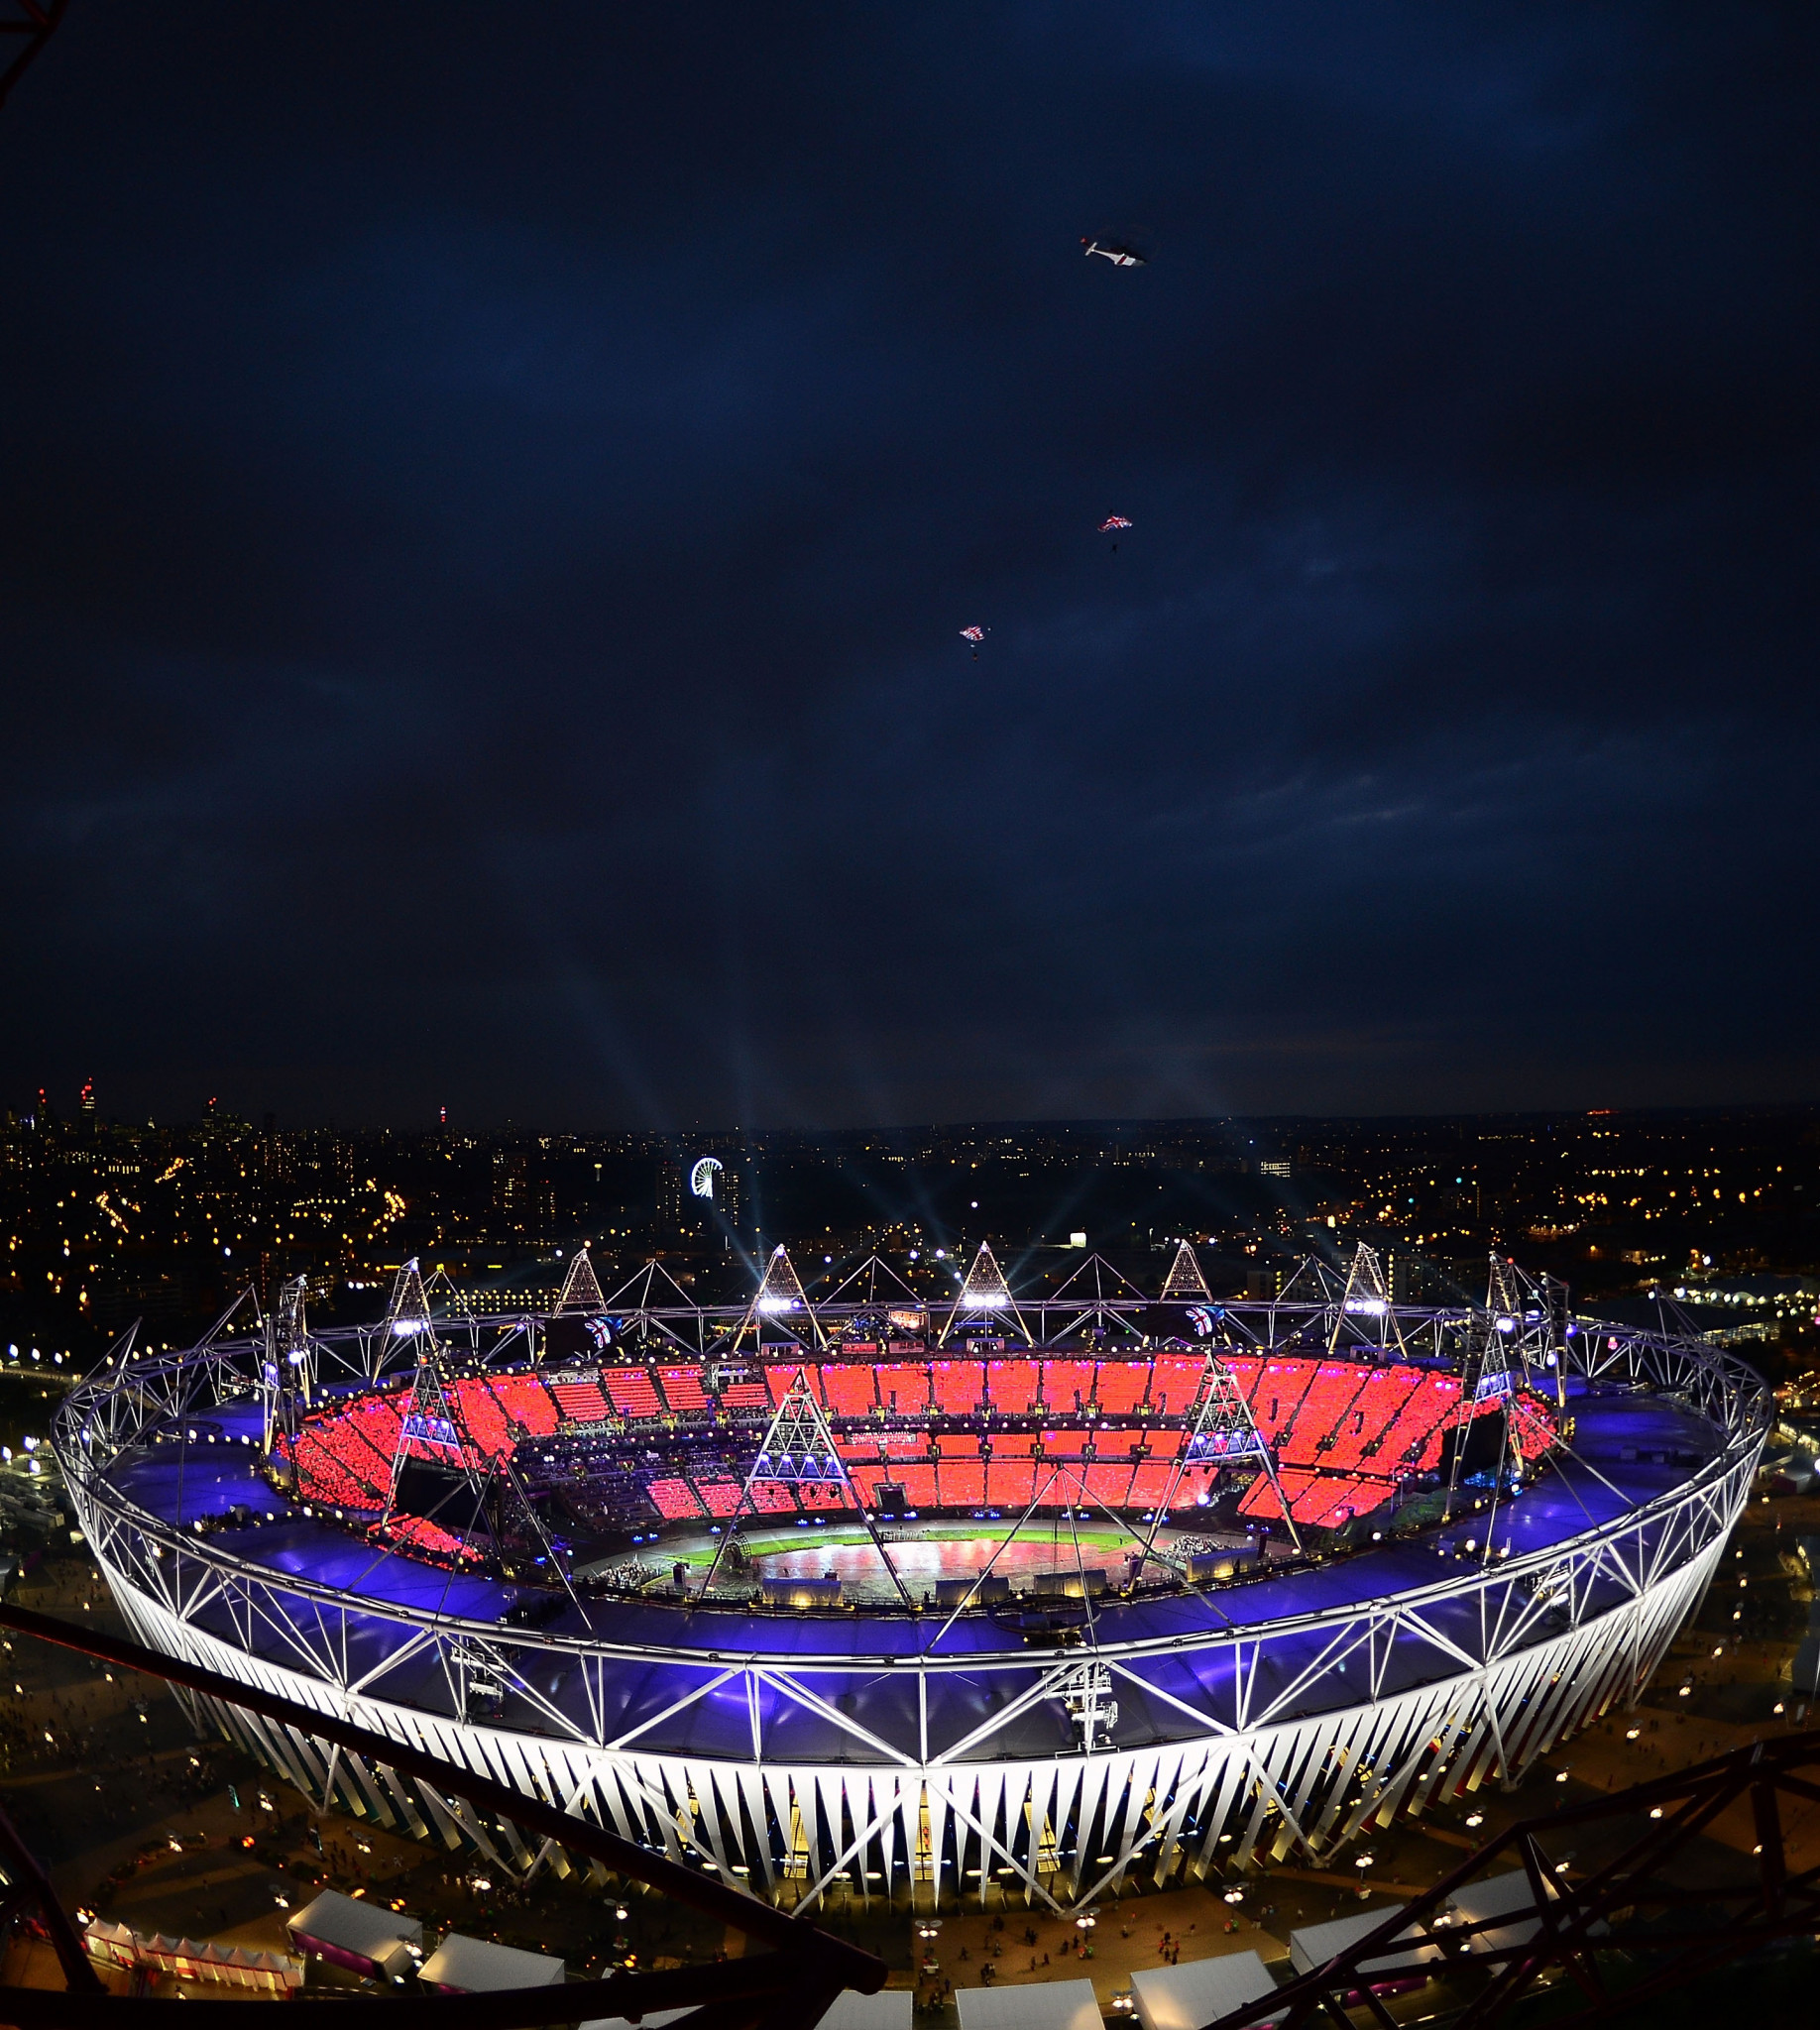 A James Bond figure leapt out of a helicopter as part of the London 2012 Opening Ceremony ©Getty Images